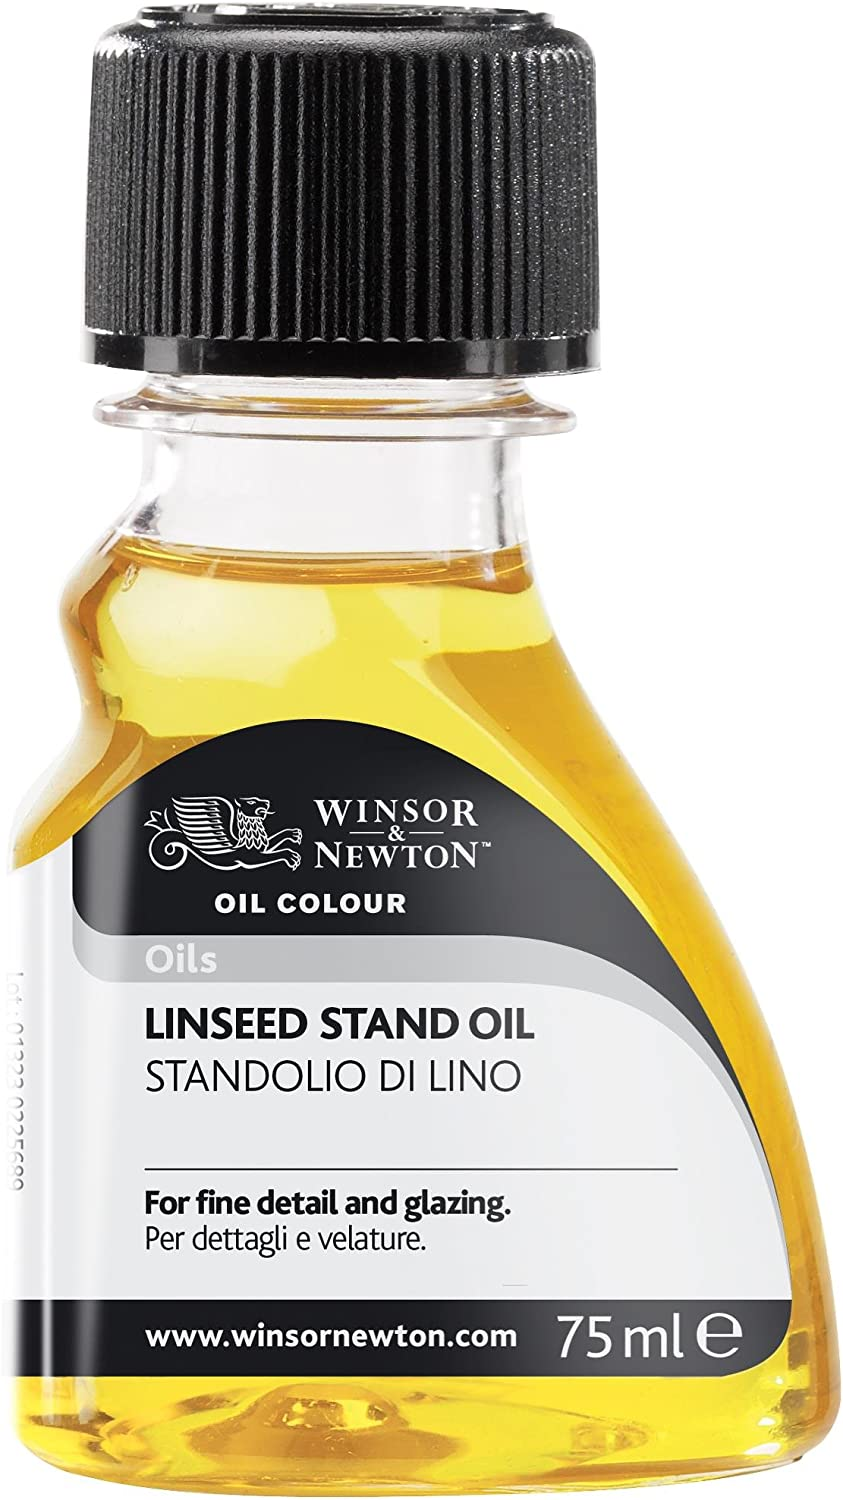 Winsor & Newton, 75ml Stand Linseed Oil